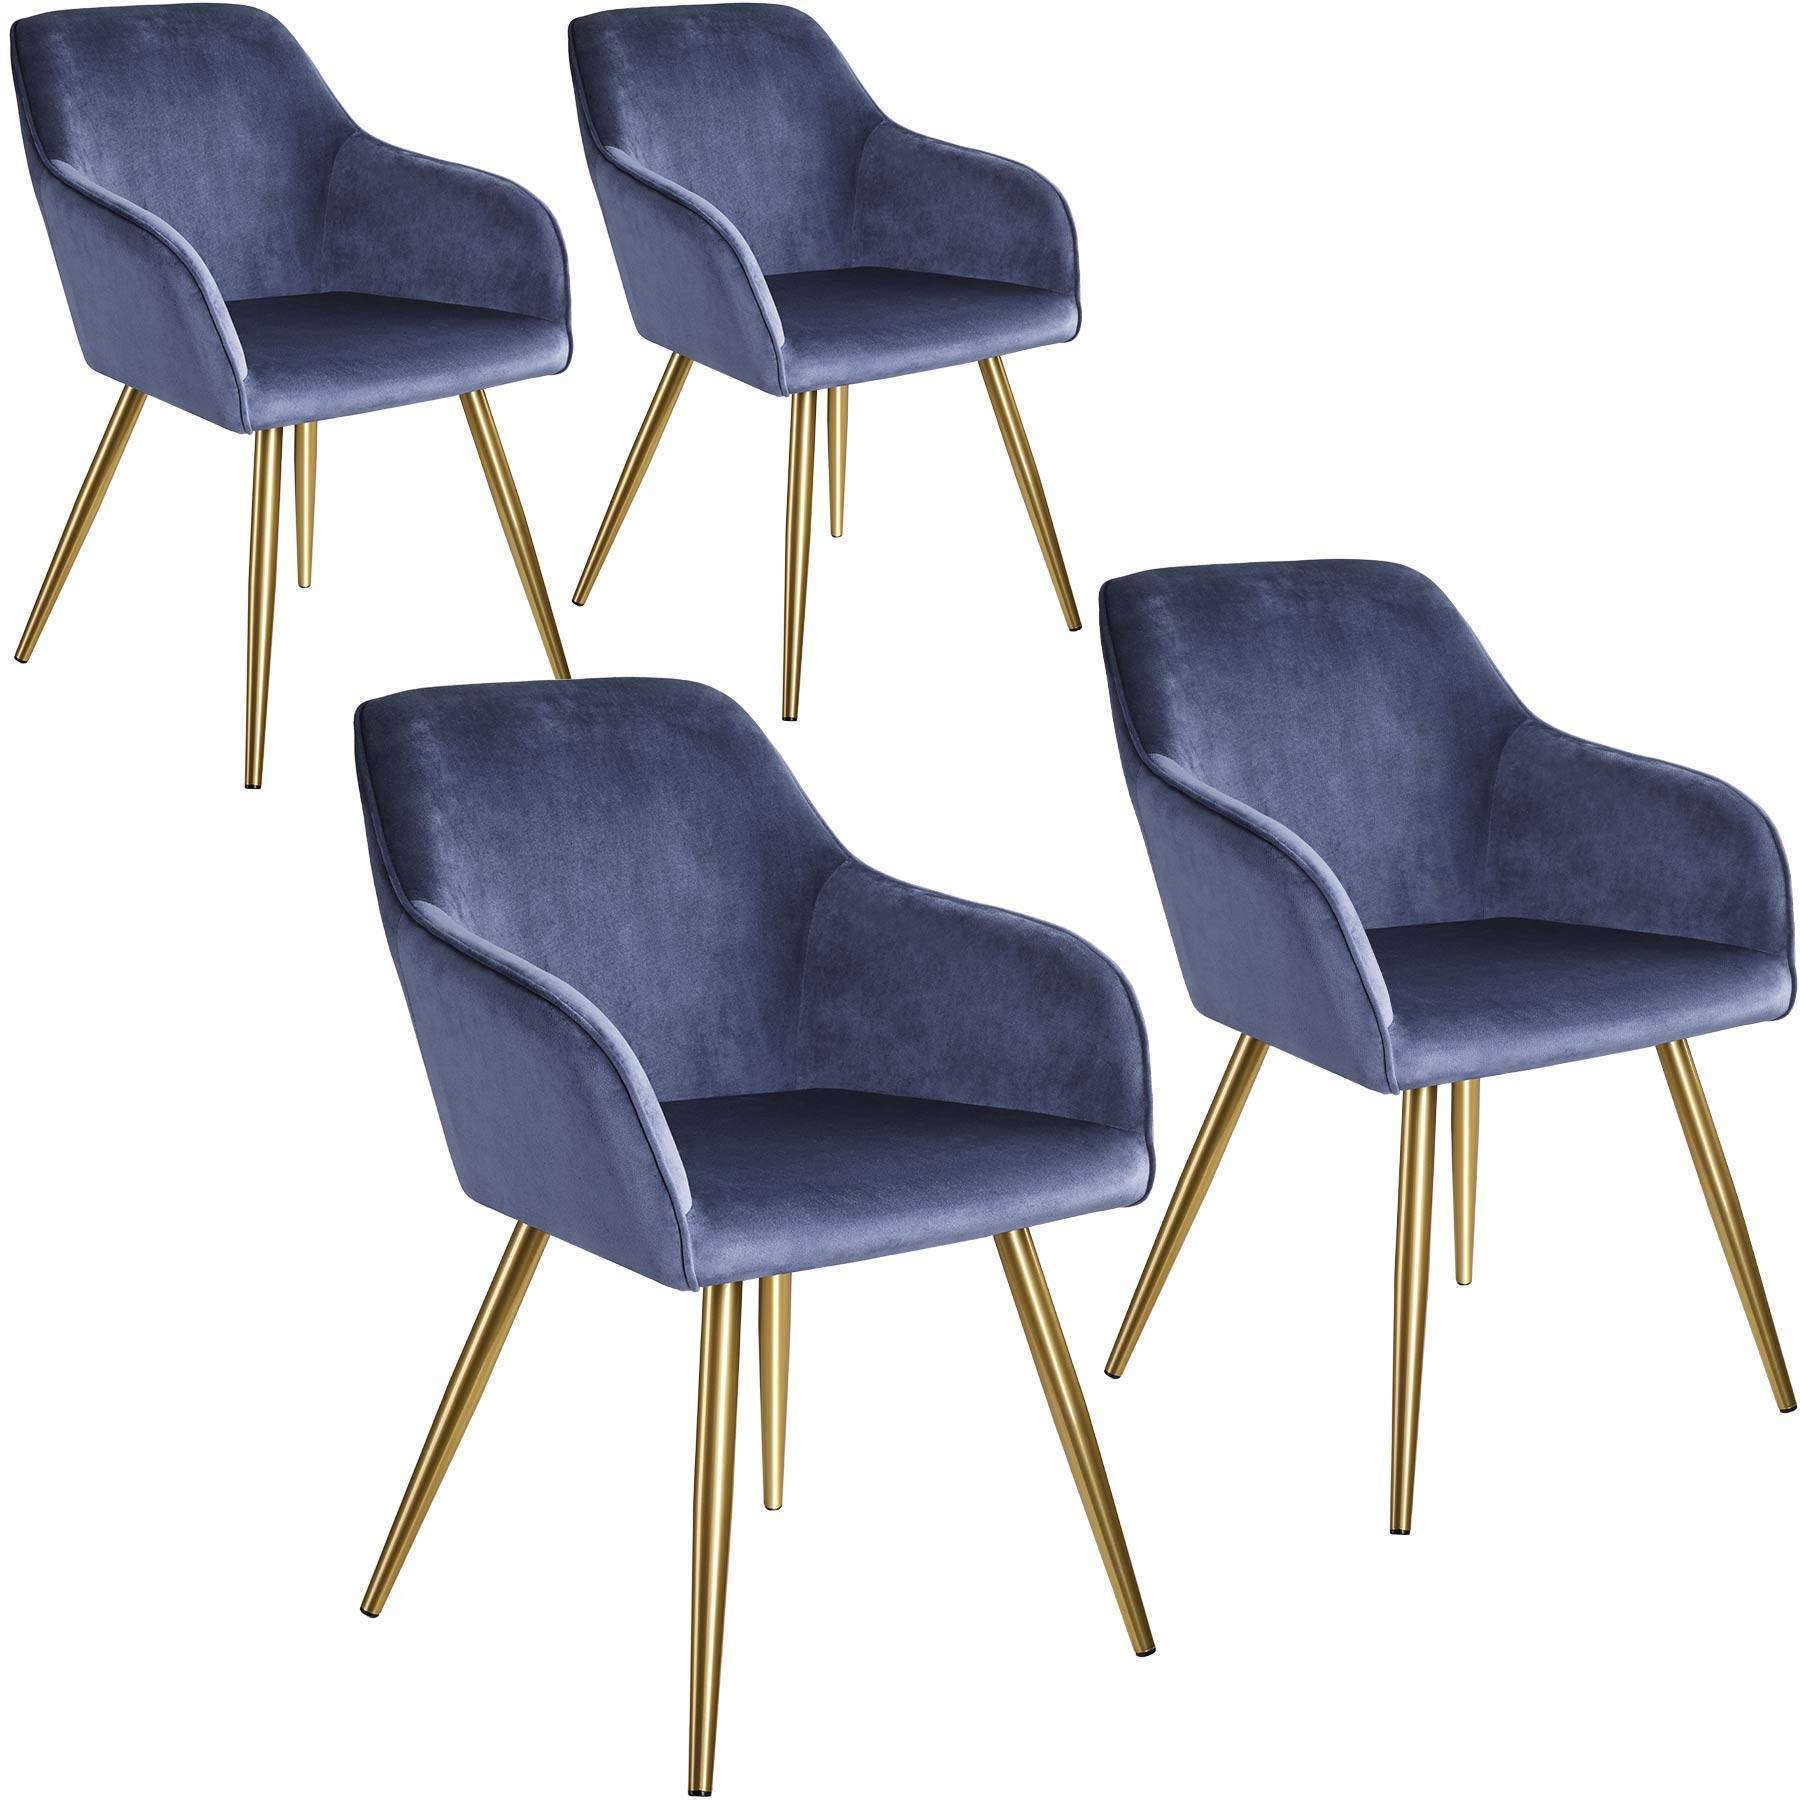 tectake 4 Marilyn Velvet-Look Chairs gold - blue/gold